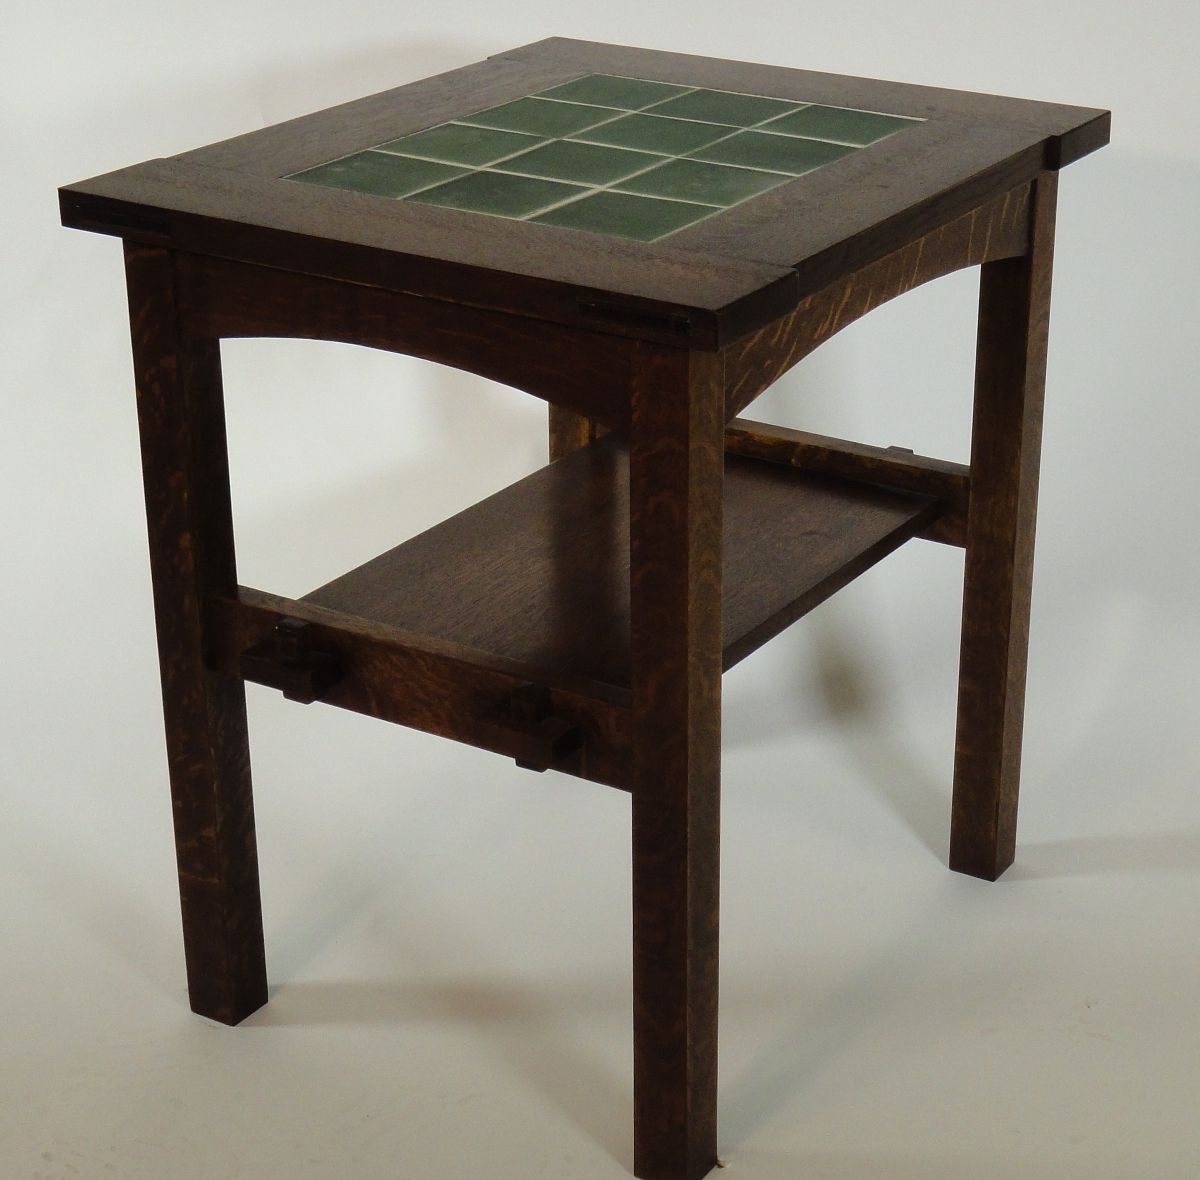 hand made reproduction stickley 12 tile side table by mostly mission furniture. Black Bedroom Furniture Sets. Home Design Ideas